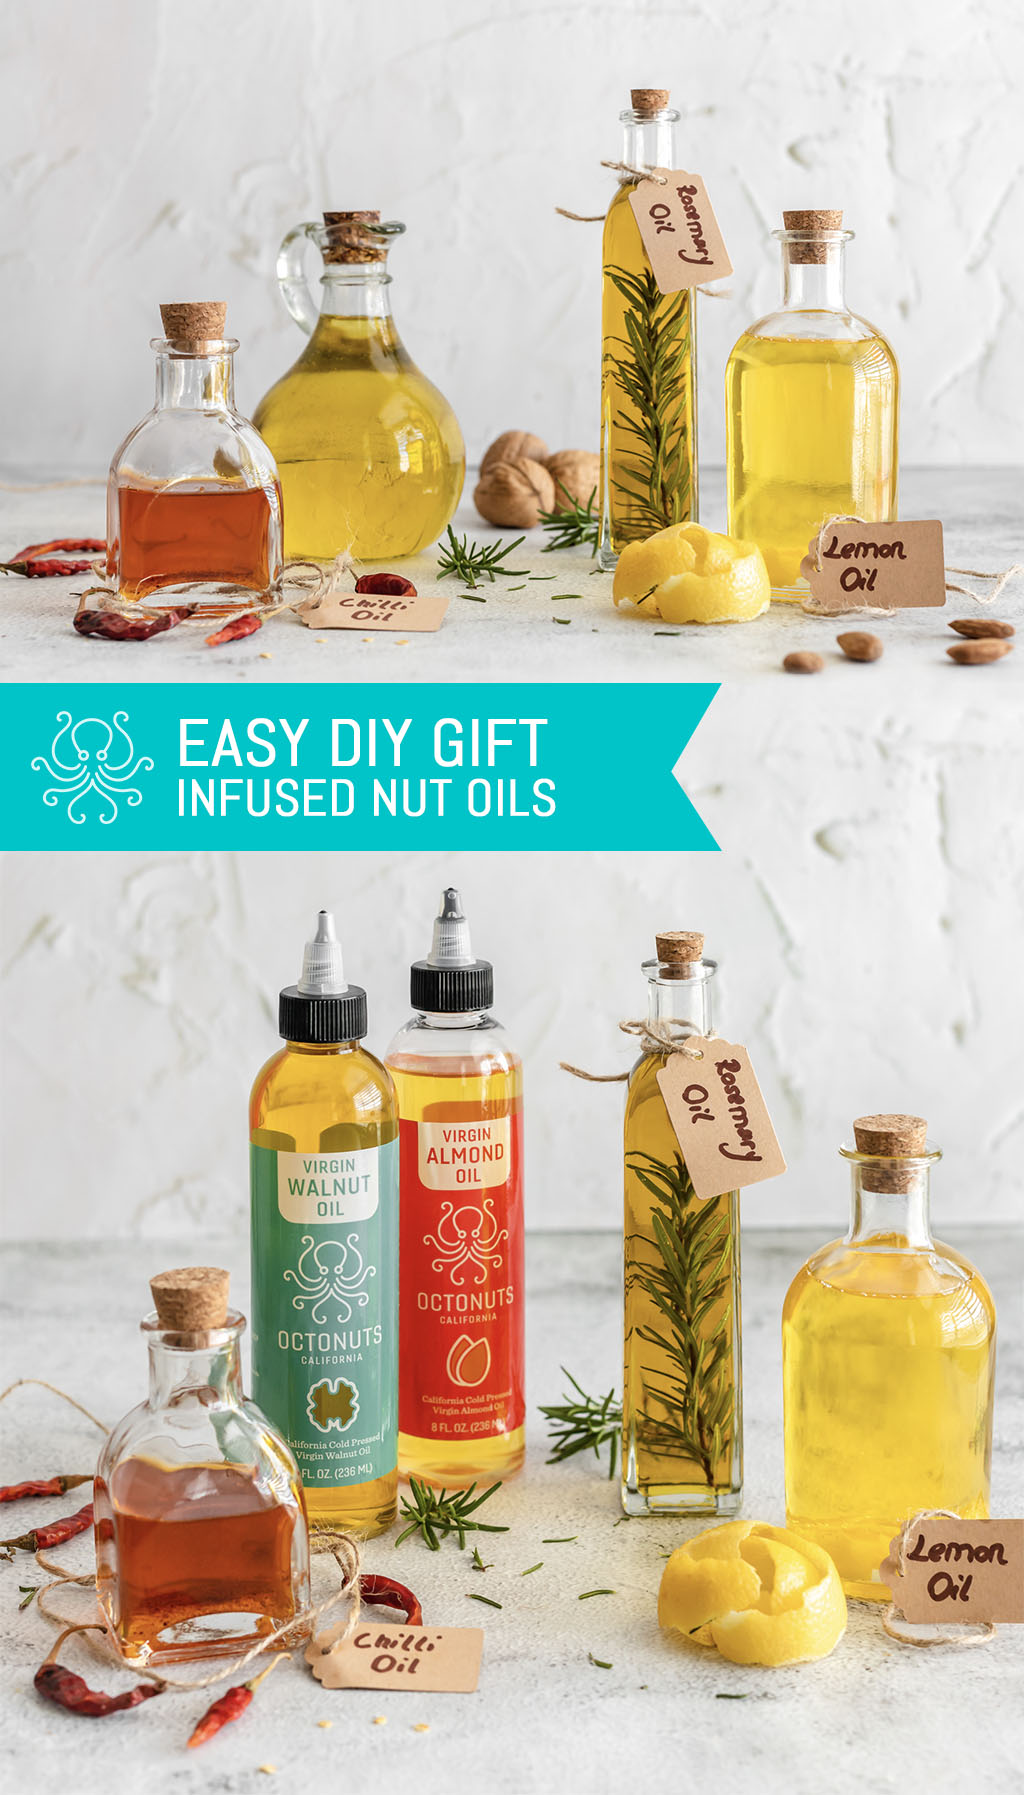 Easy DIY Gift: Infused Nut Oils